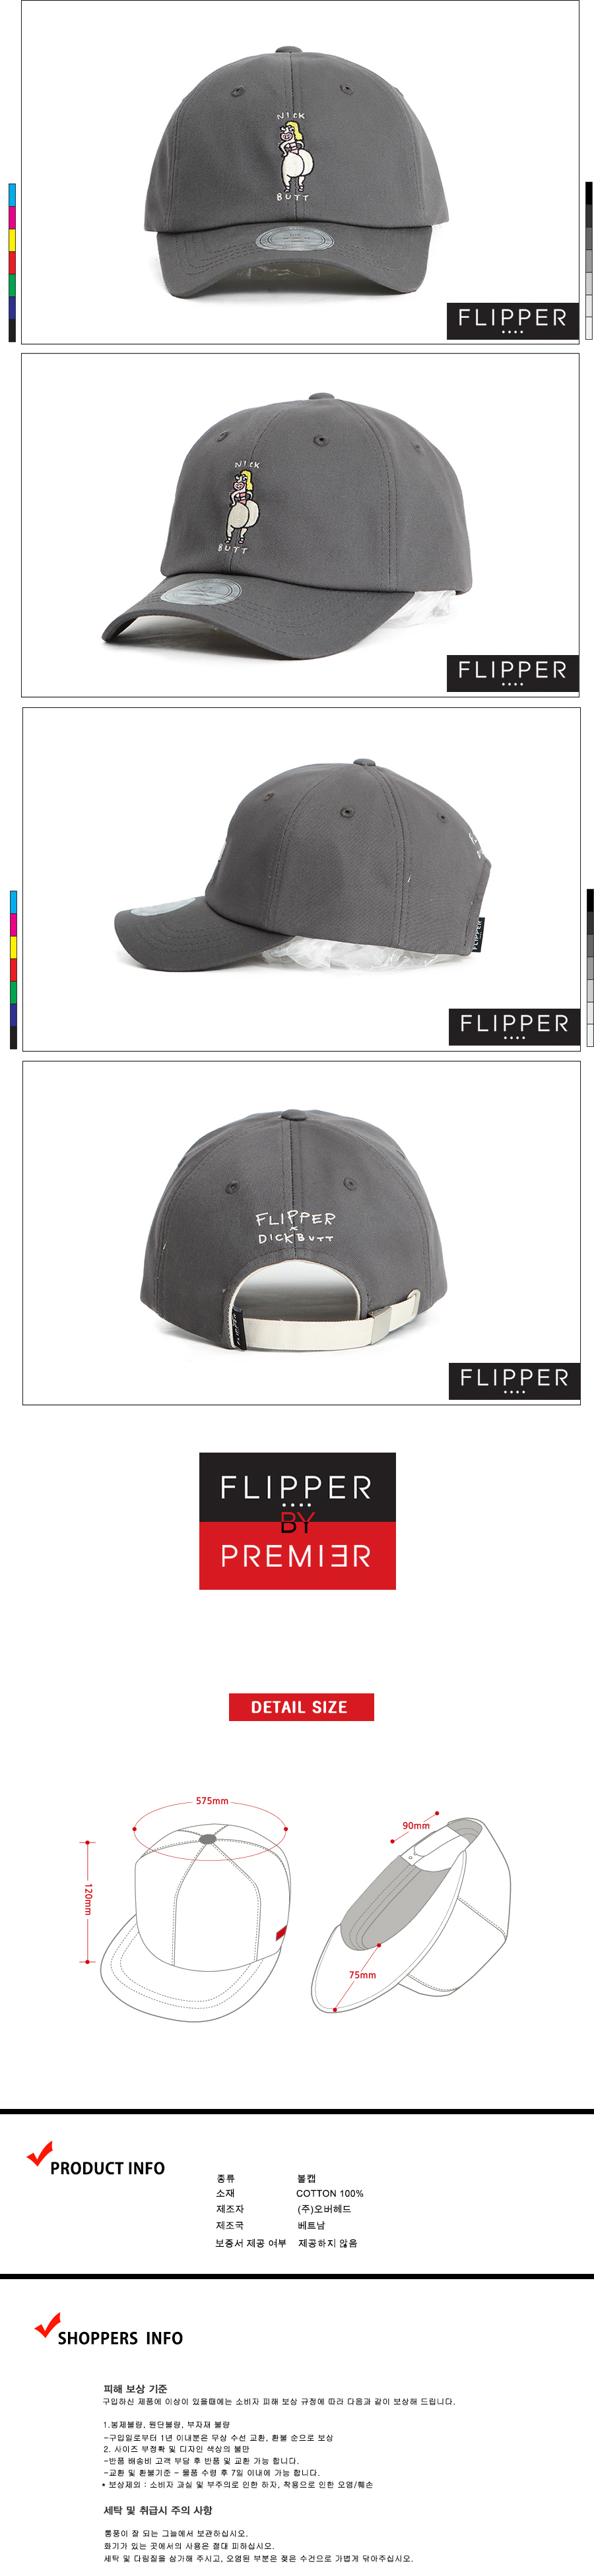 [ PREMIER ] [Premier] Flipper Ball Cap Nick Butt Charcoal (FL074)